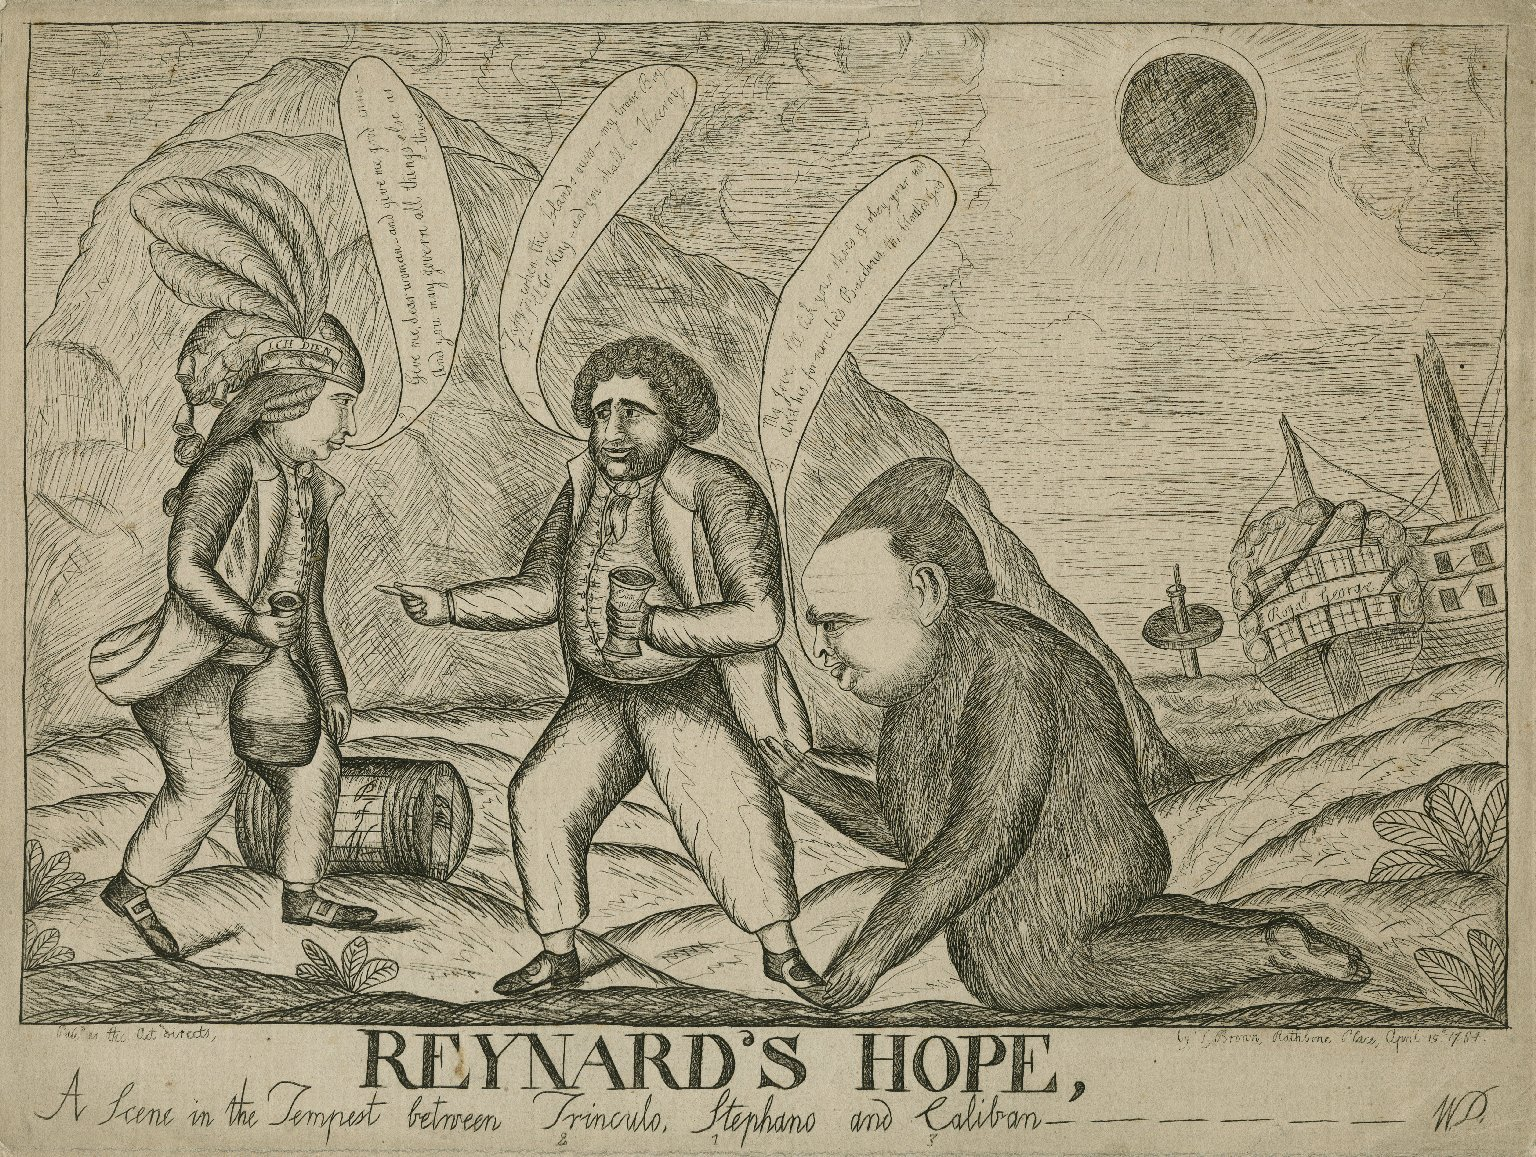 Reynard's hope, a scene in the Tempest between Trinculo, Stephano and Caliban [graphic] / W.D.